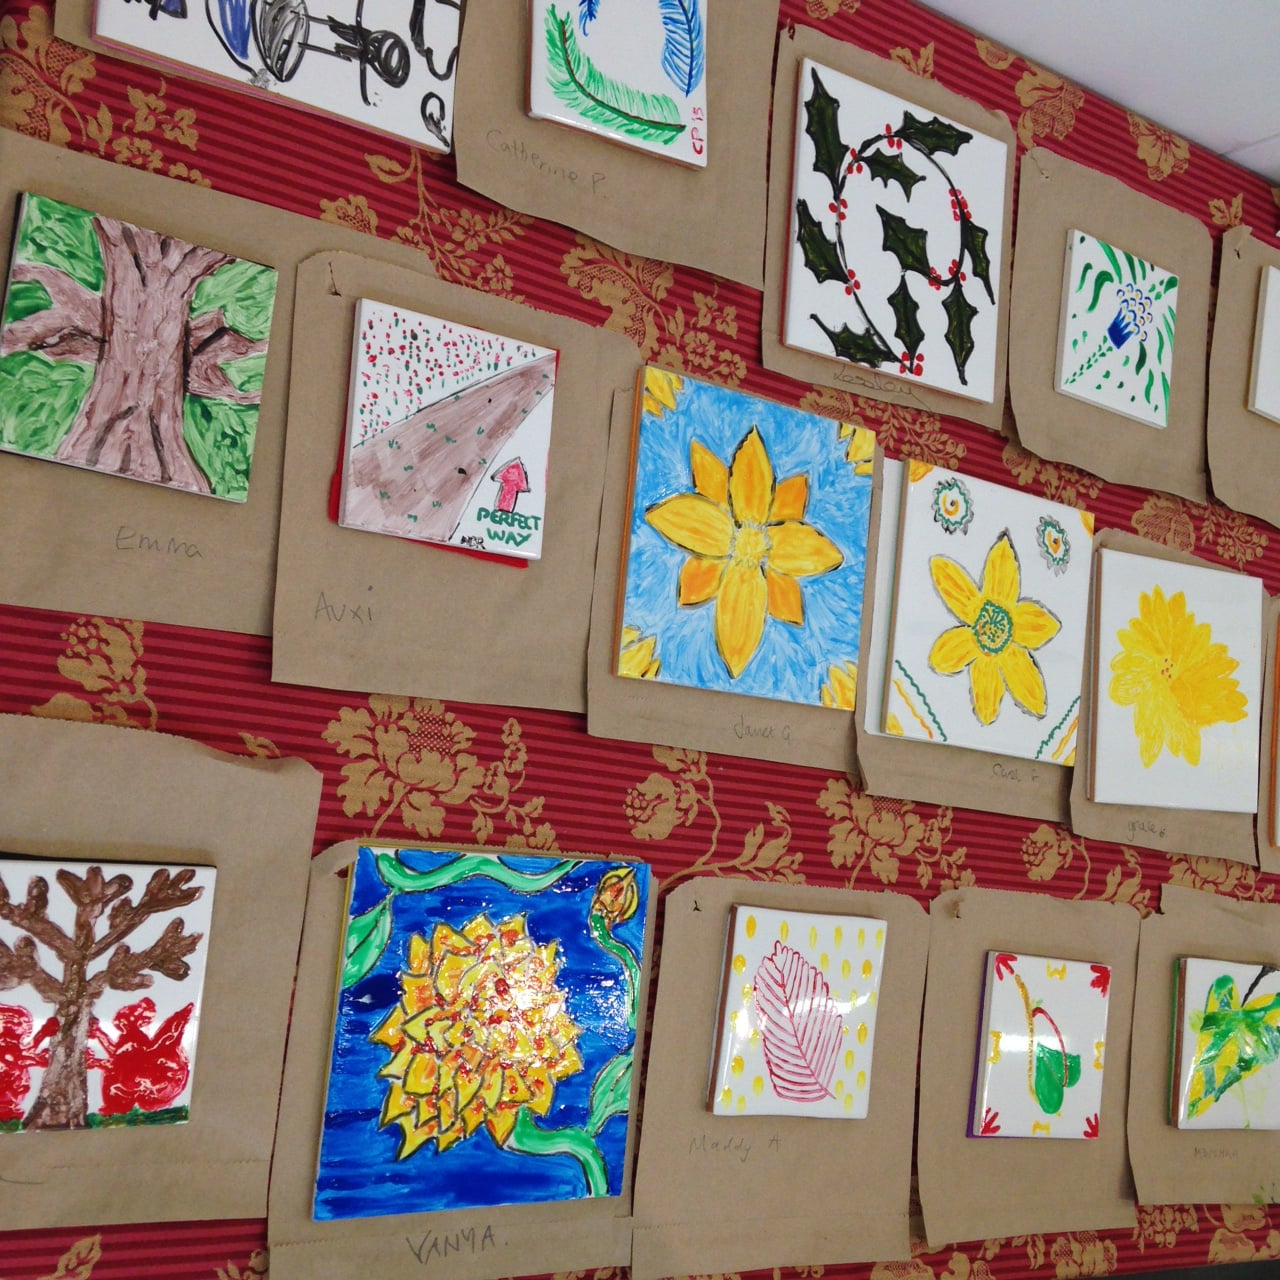 Morris-inspired tiles painted by Art Miles participants at William Morris Gallery -